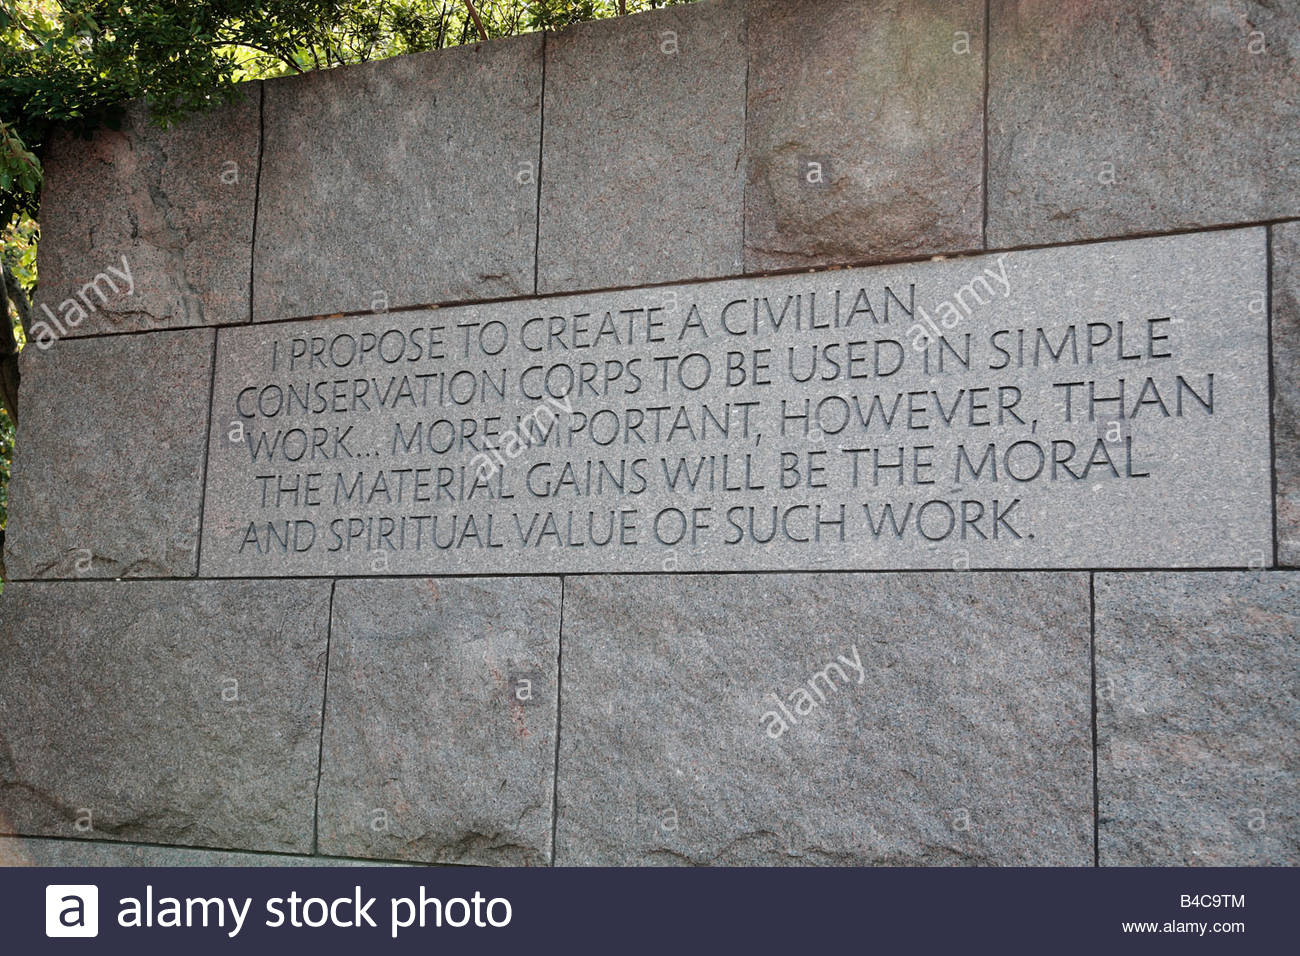 Engraving memorializing the creation of the Civilian Conservation Corps, at the FDR Memorial in Washington, DC. - Stock Image